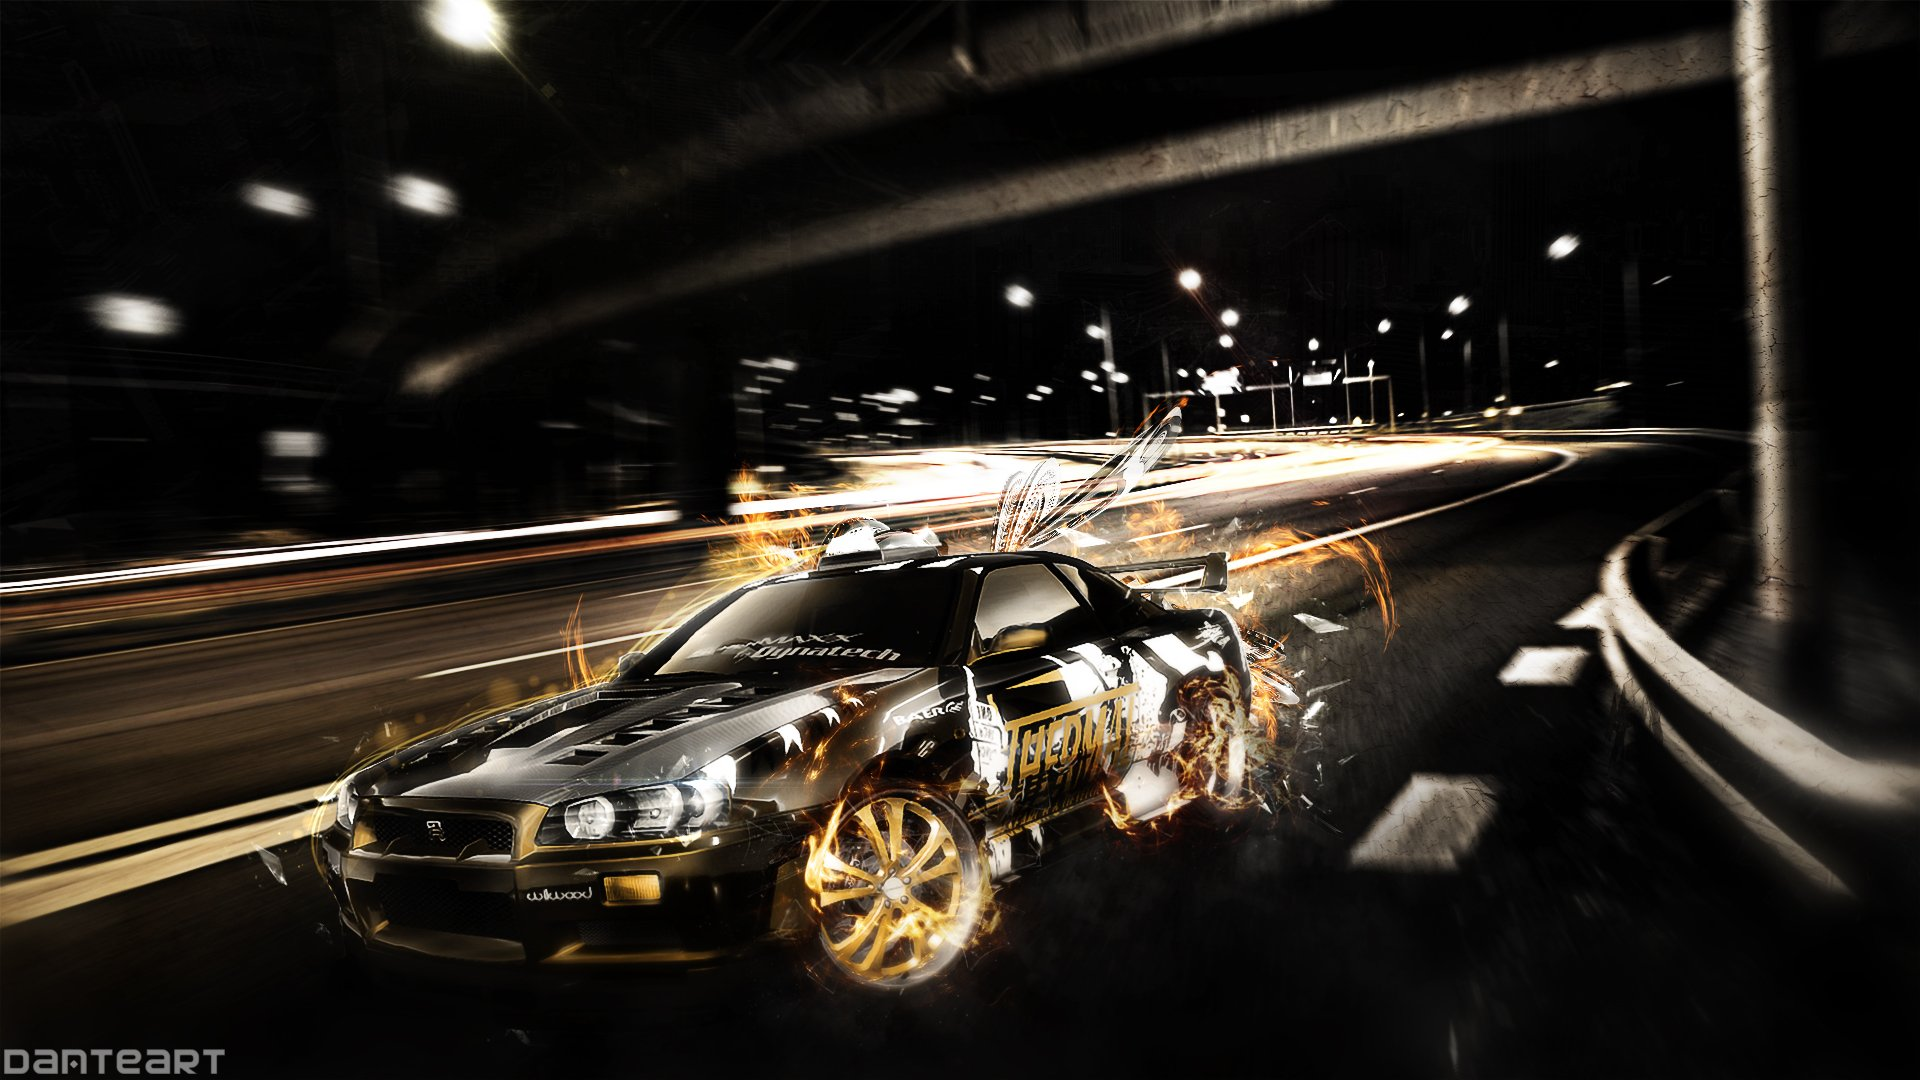 Need For Speed Underground Wallpaper by DanteArtWallpapers on 1920x1080